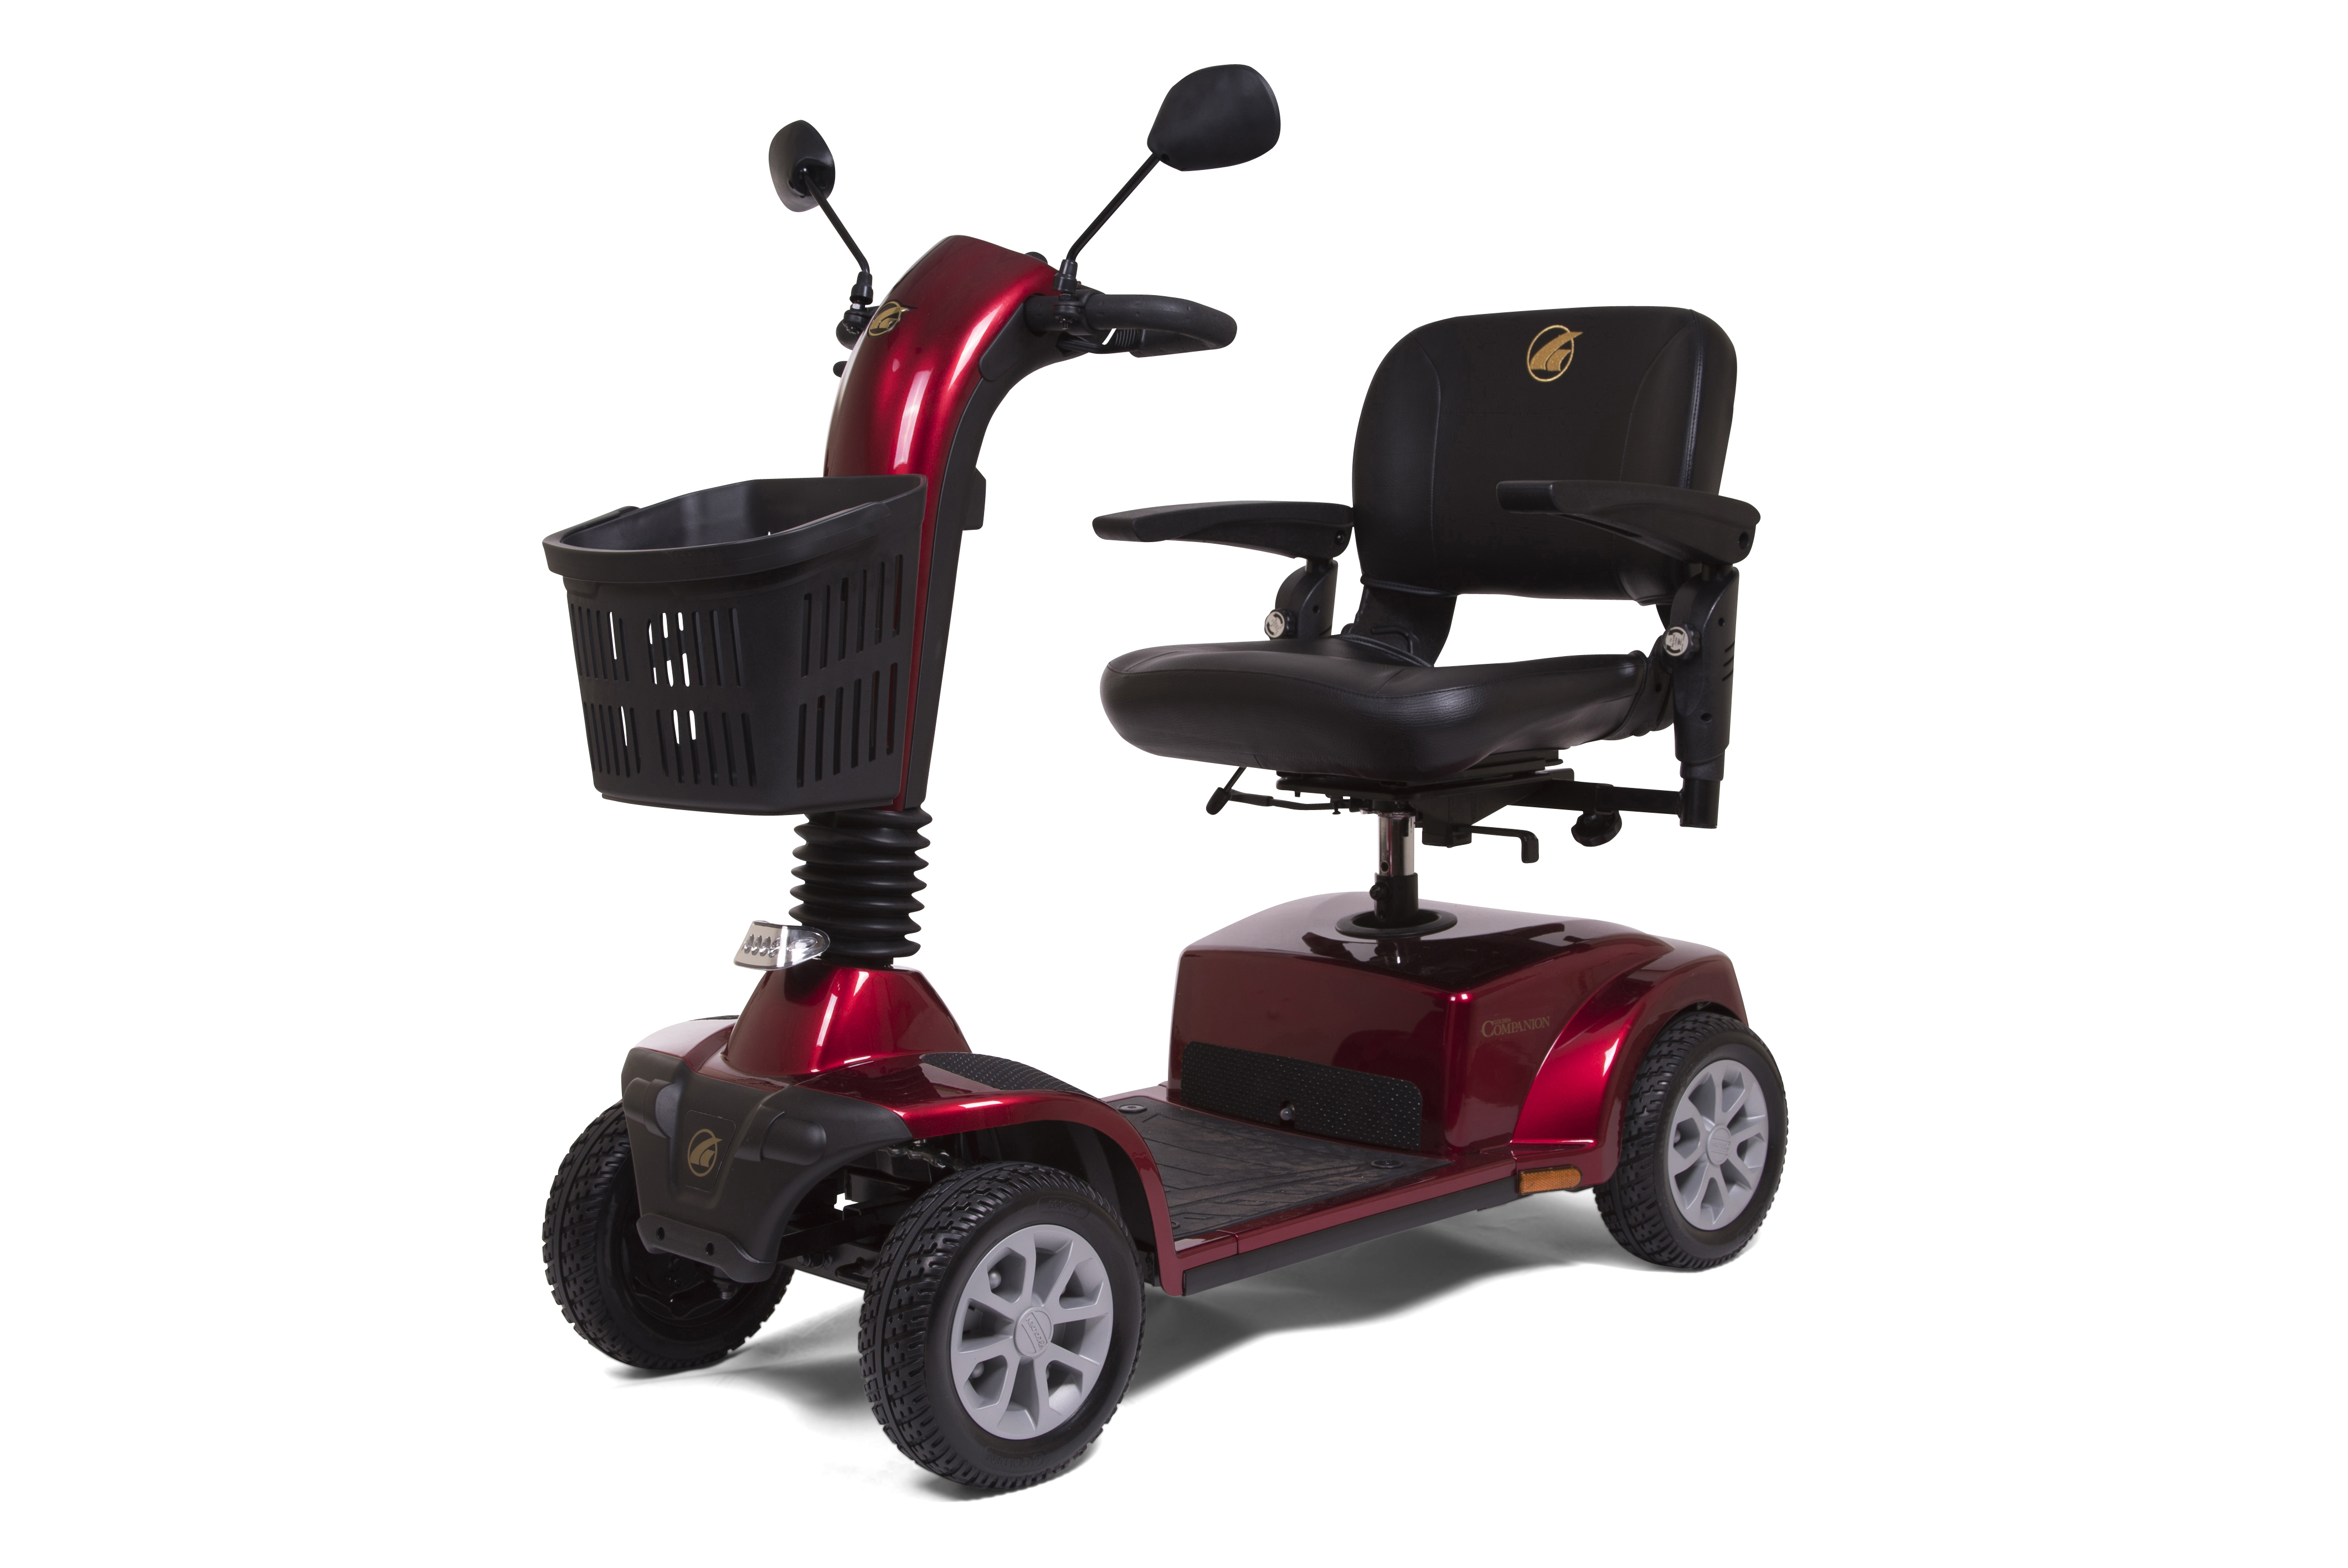 Photo of the Companion 4-Wheel Full Size Scooter.